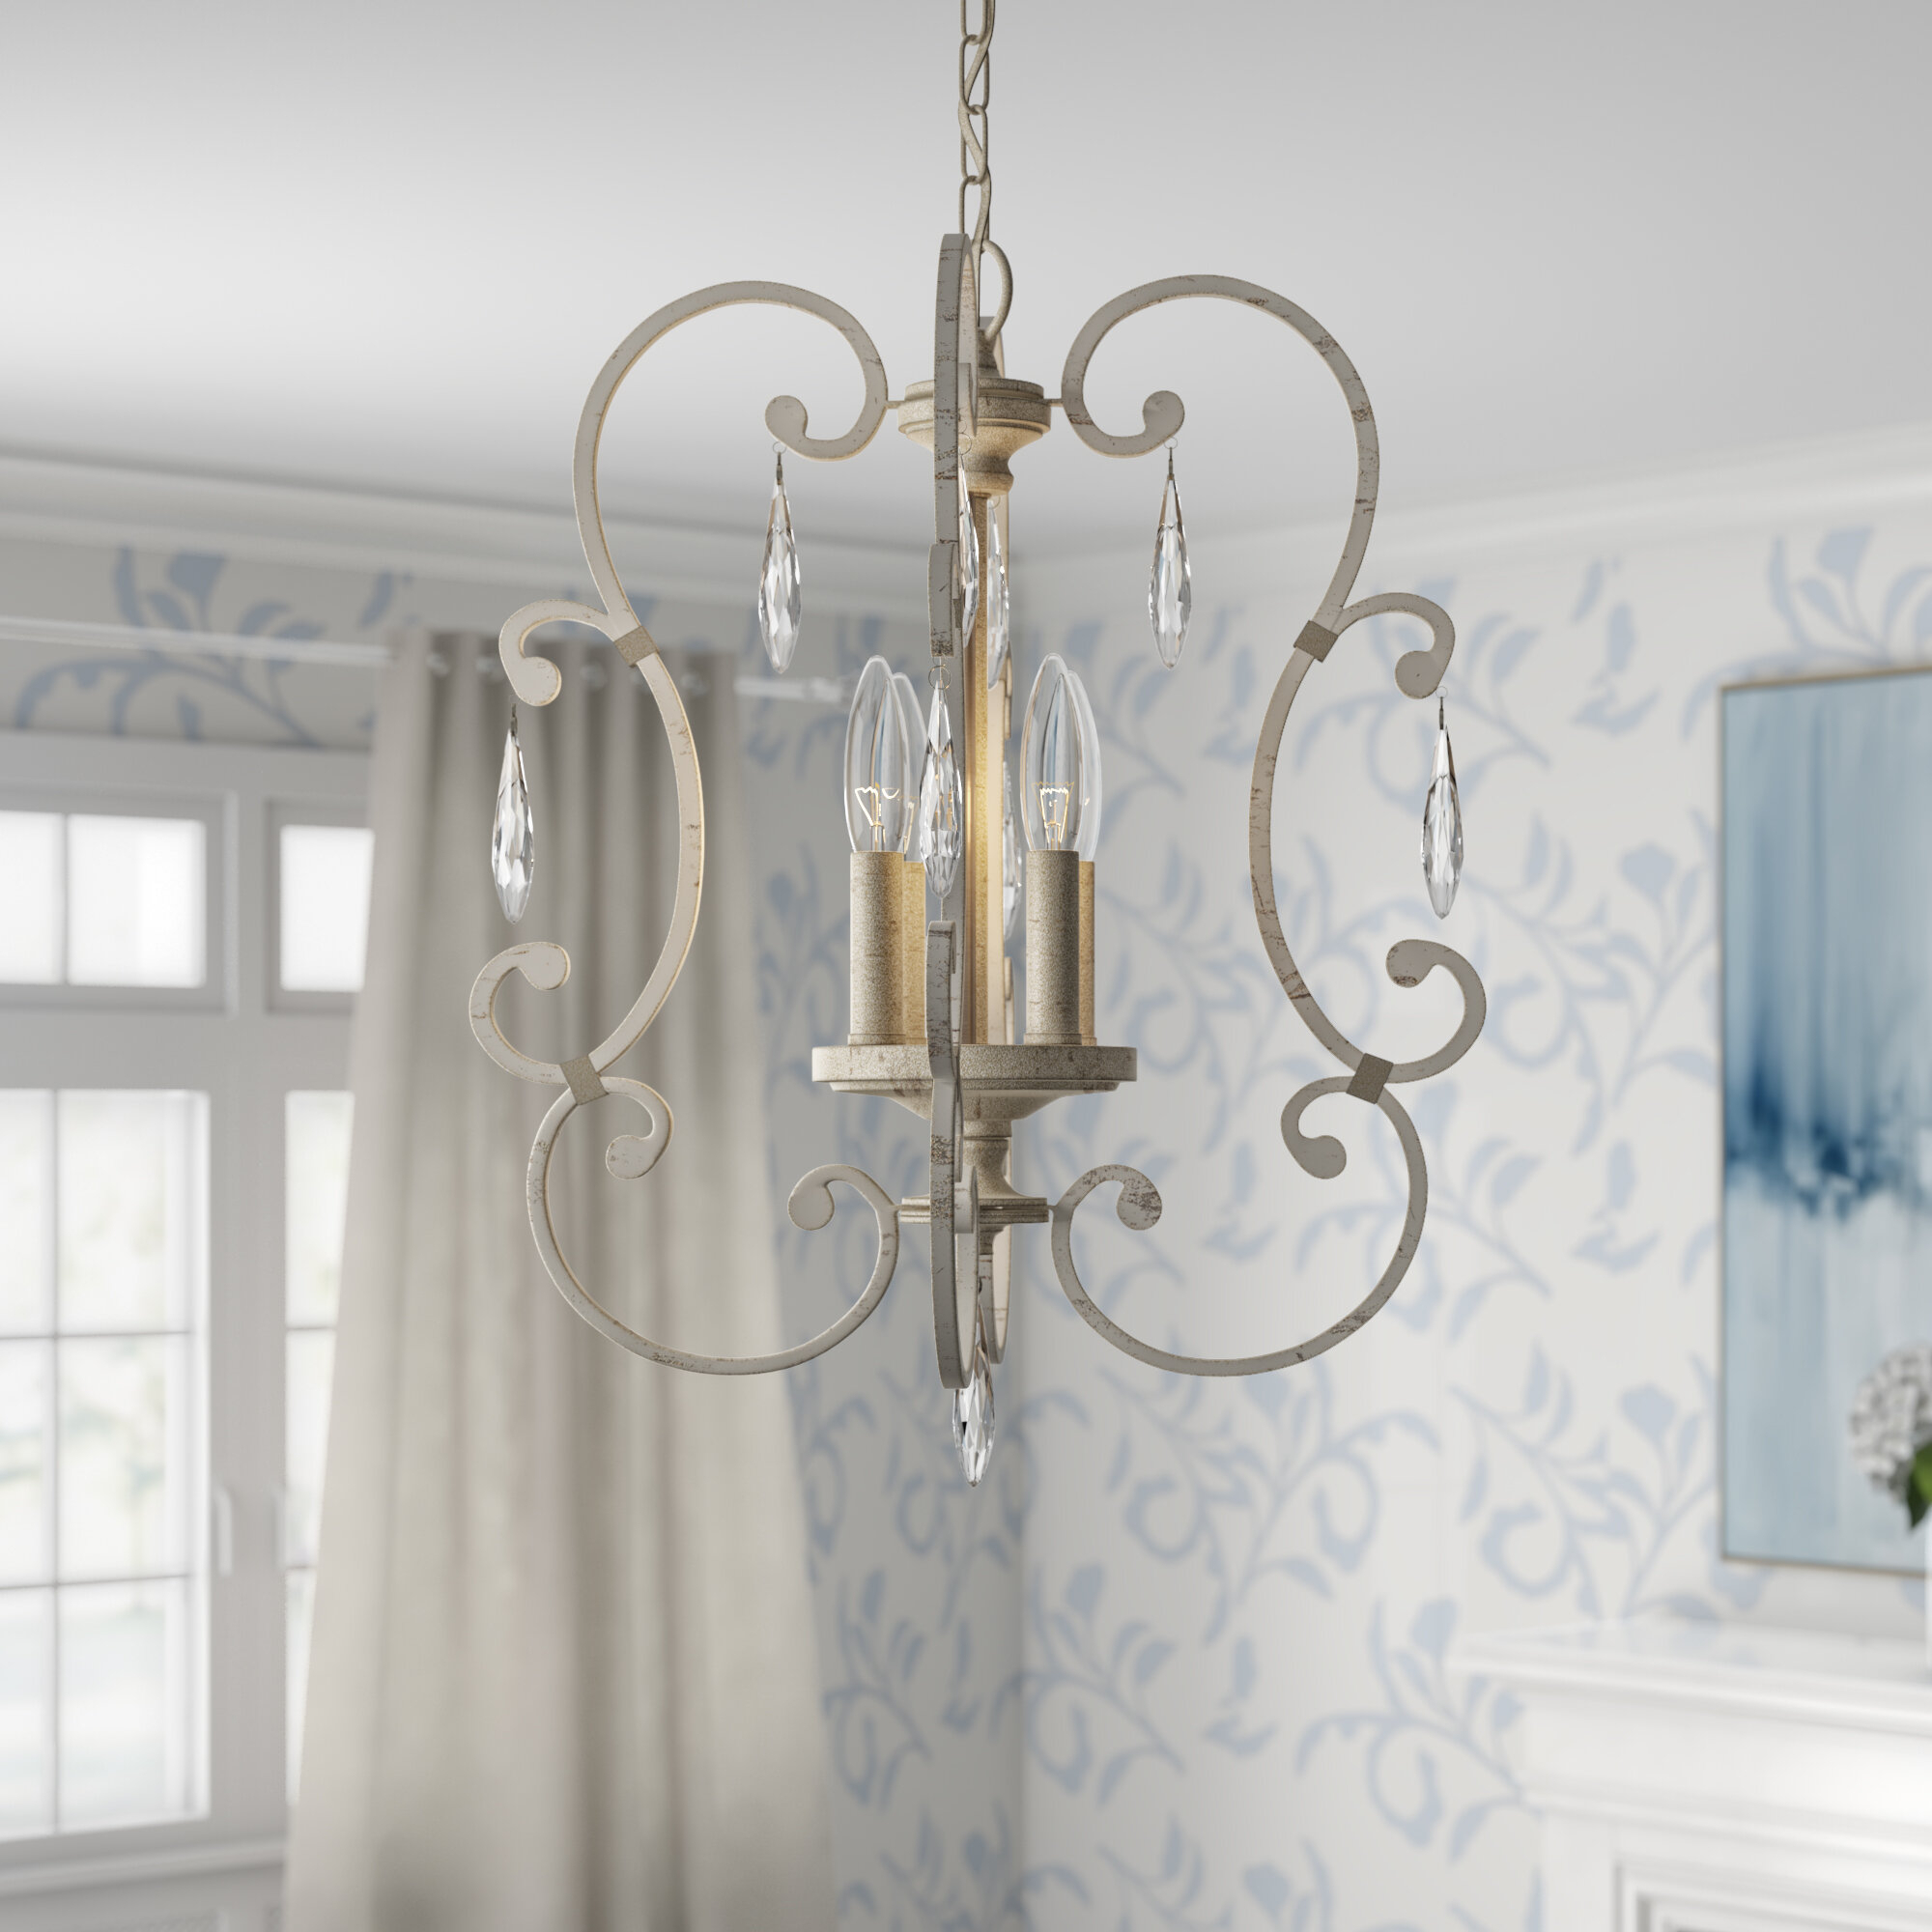 Oriana 4-Light Single Geometric Chandelier with regard to Oriana 4-Light Single Geometric Chandeliers (Image 23 of 30)